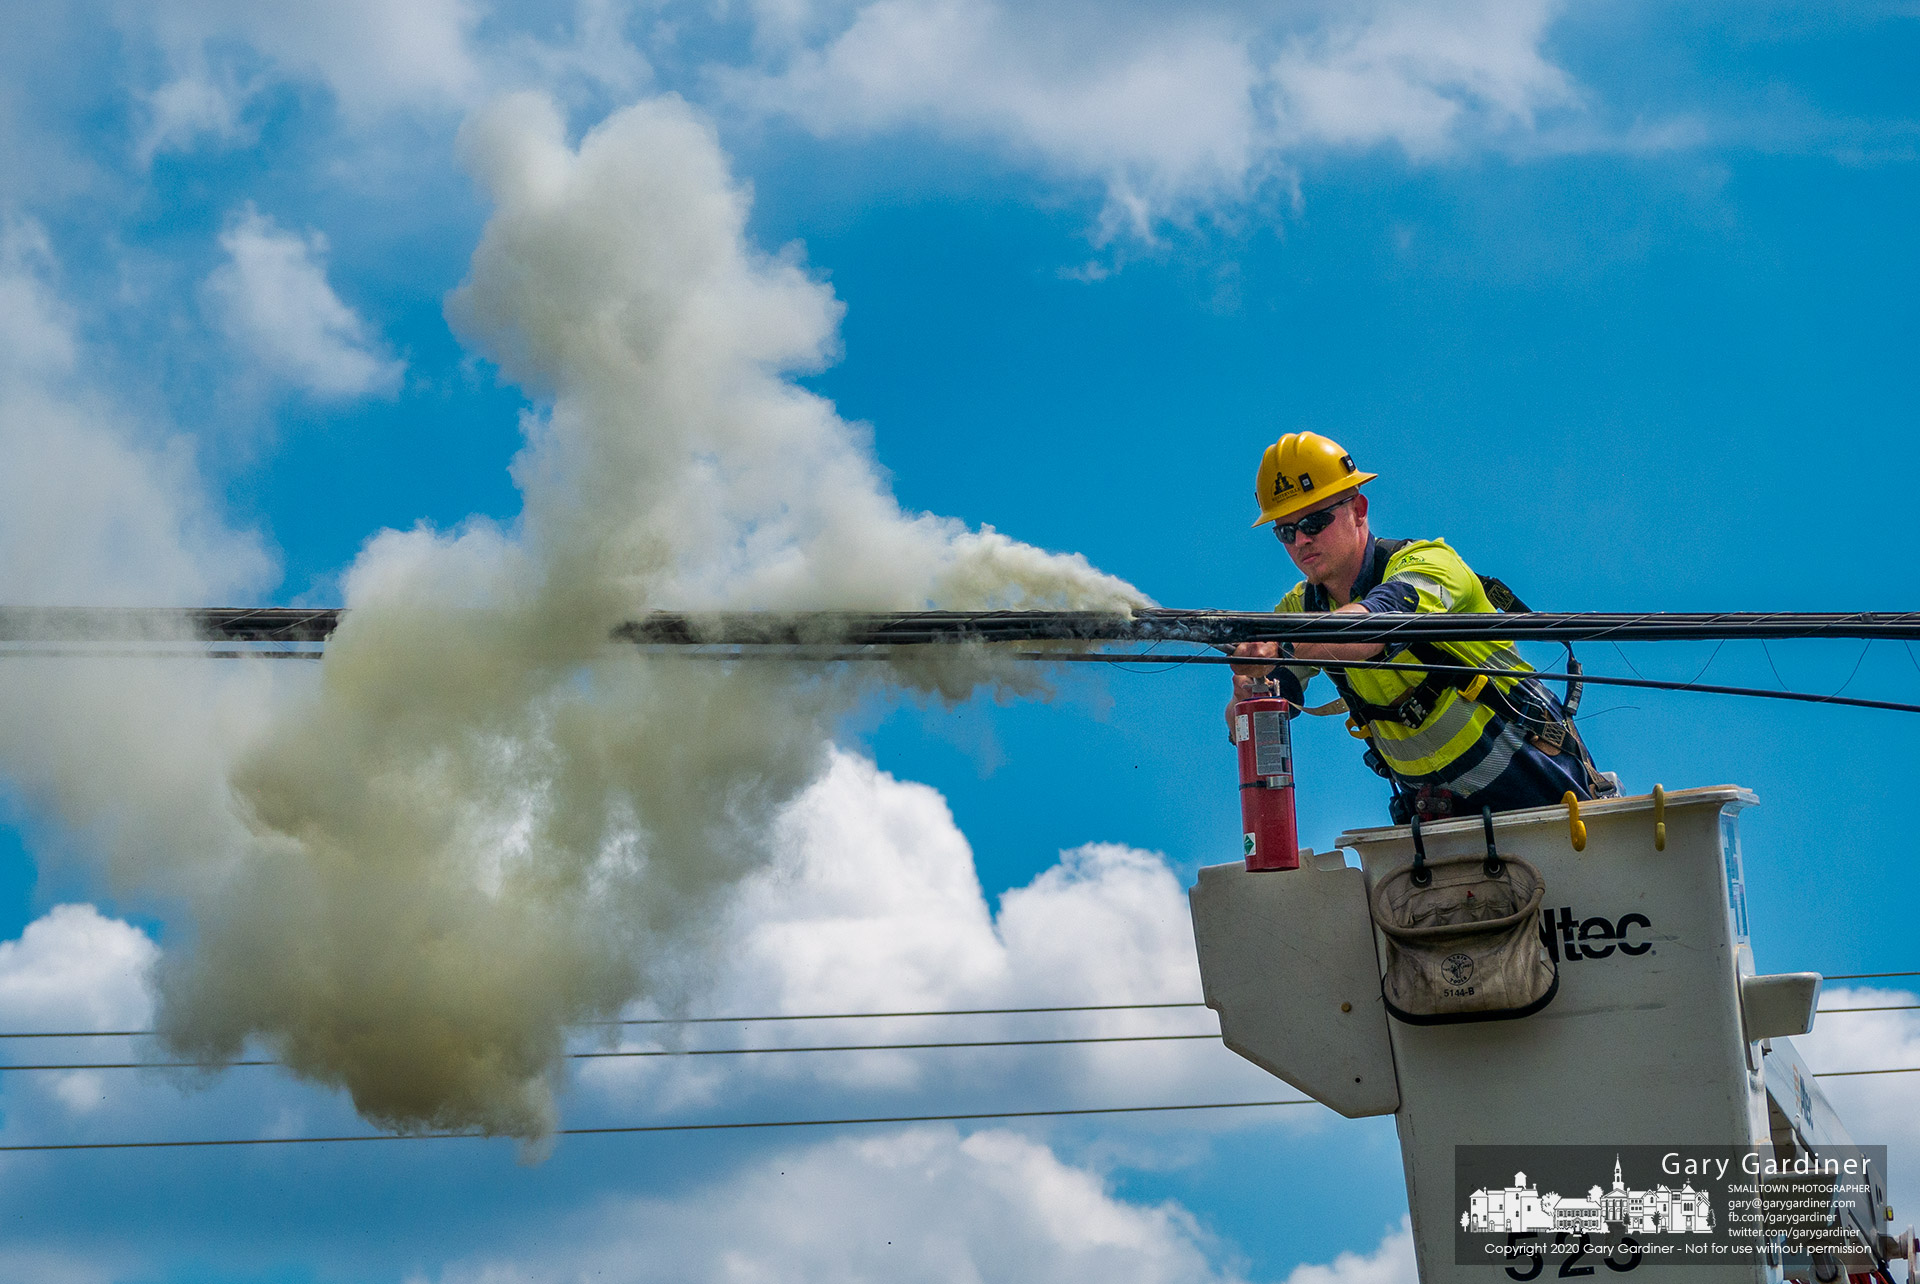 A city electric worker sprays a fire extinguisher on a section of plastic wrap around utility cabling that caught fire in the afternoon from an unknown source near West Main and Cleveland Ave. My Final Photo for June 19, 2020.